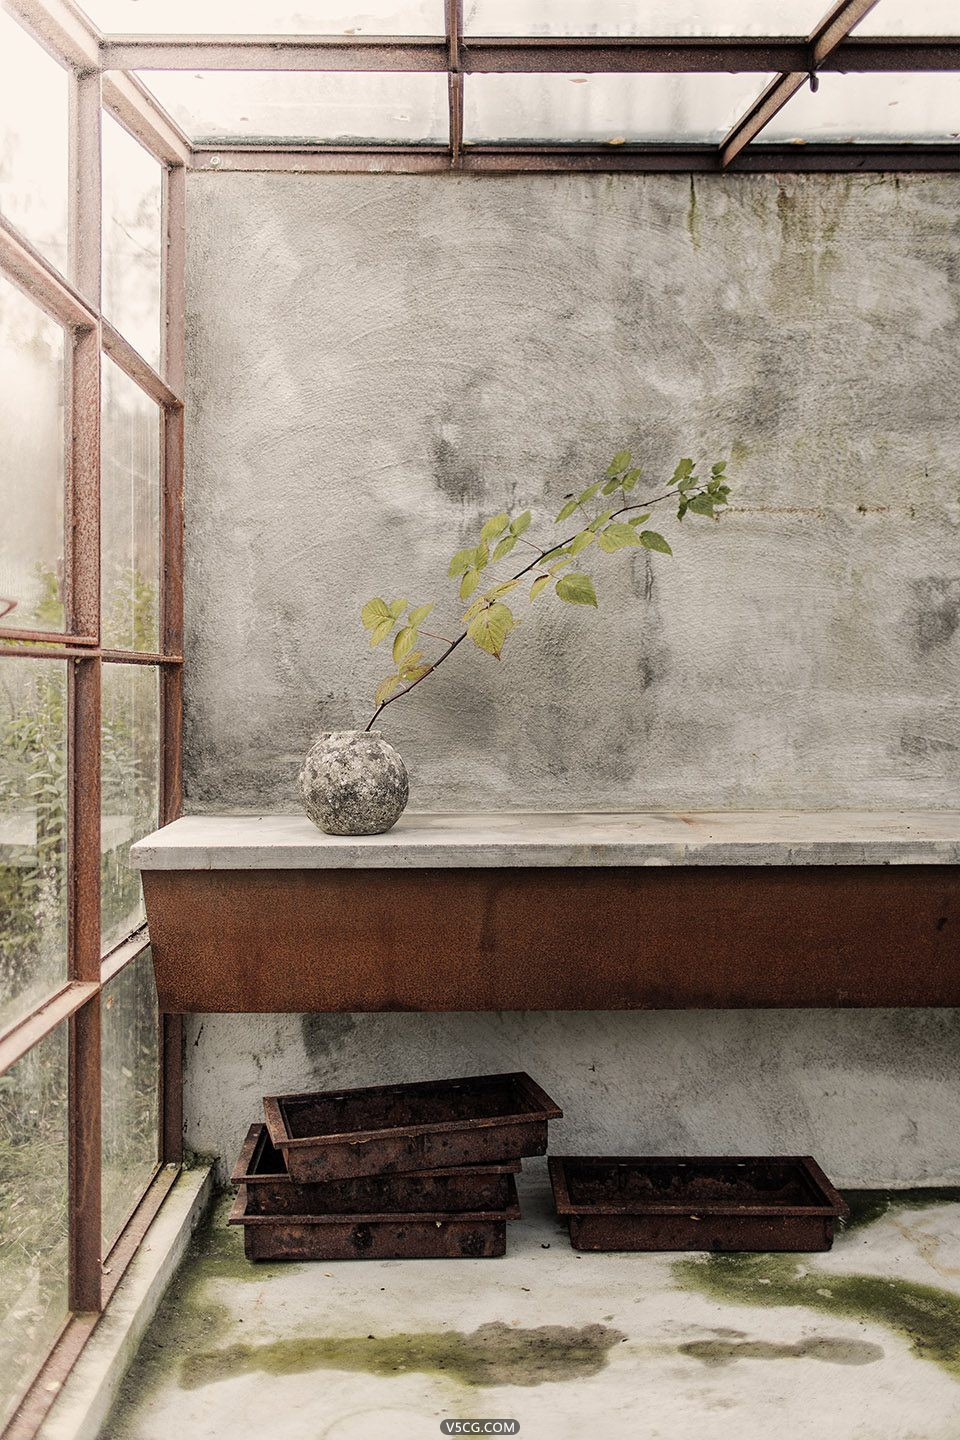 004-The-Garden-House-in-Stockholm-by-Studio-Richard-Lindvall-960x1440.jpg